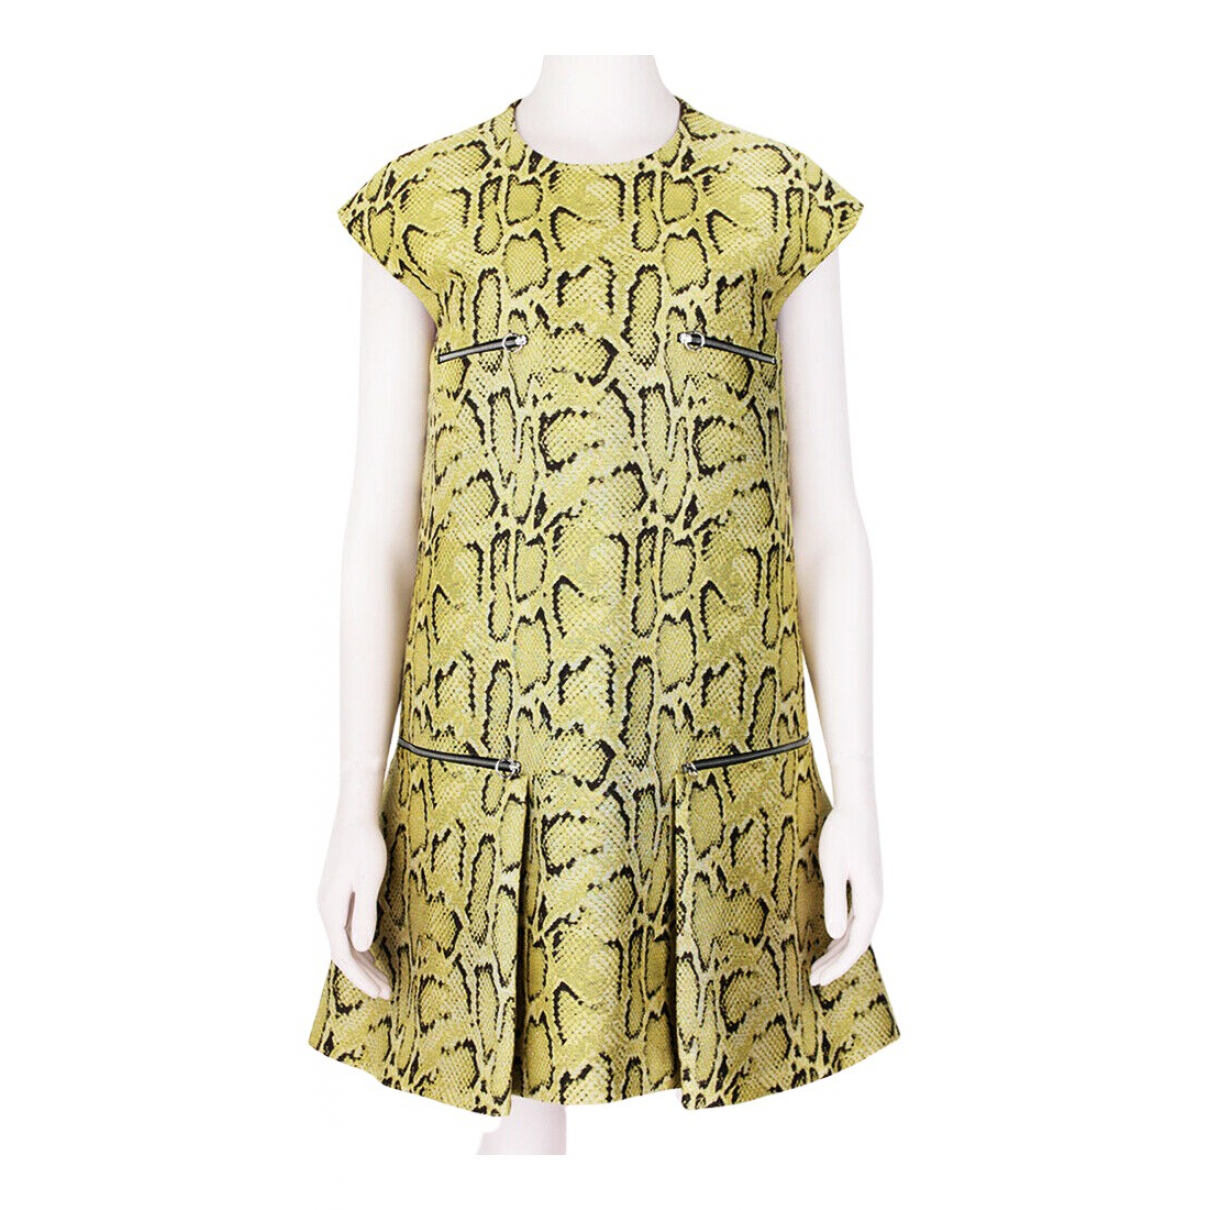 Stella Mccartney \N Kleid in  Gelb Polyester